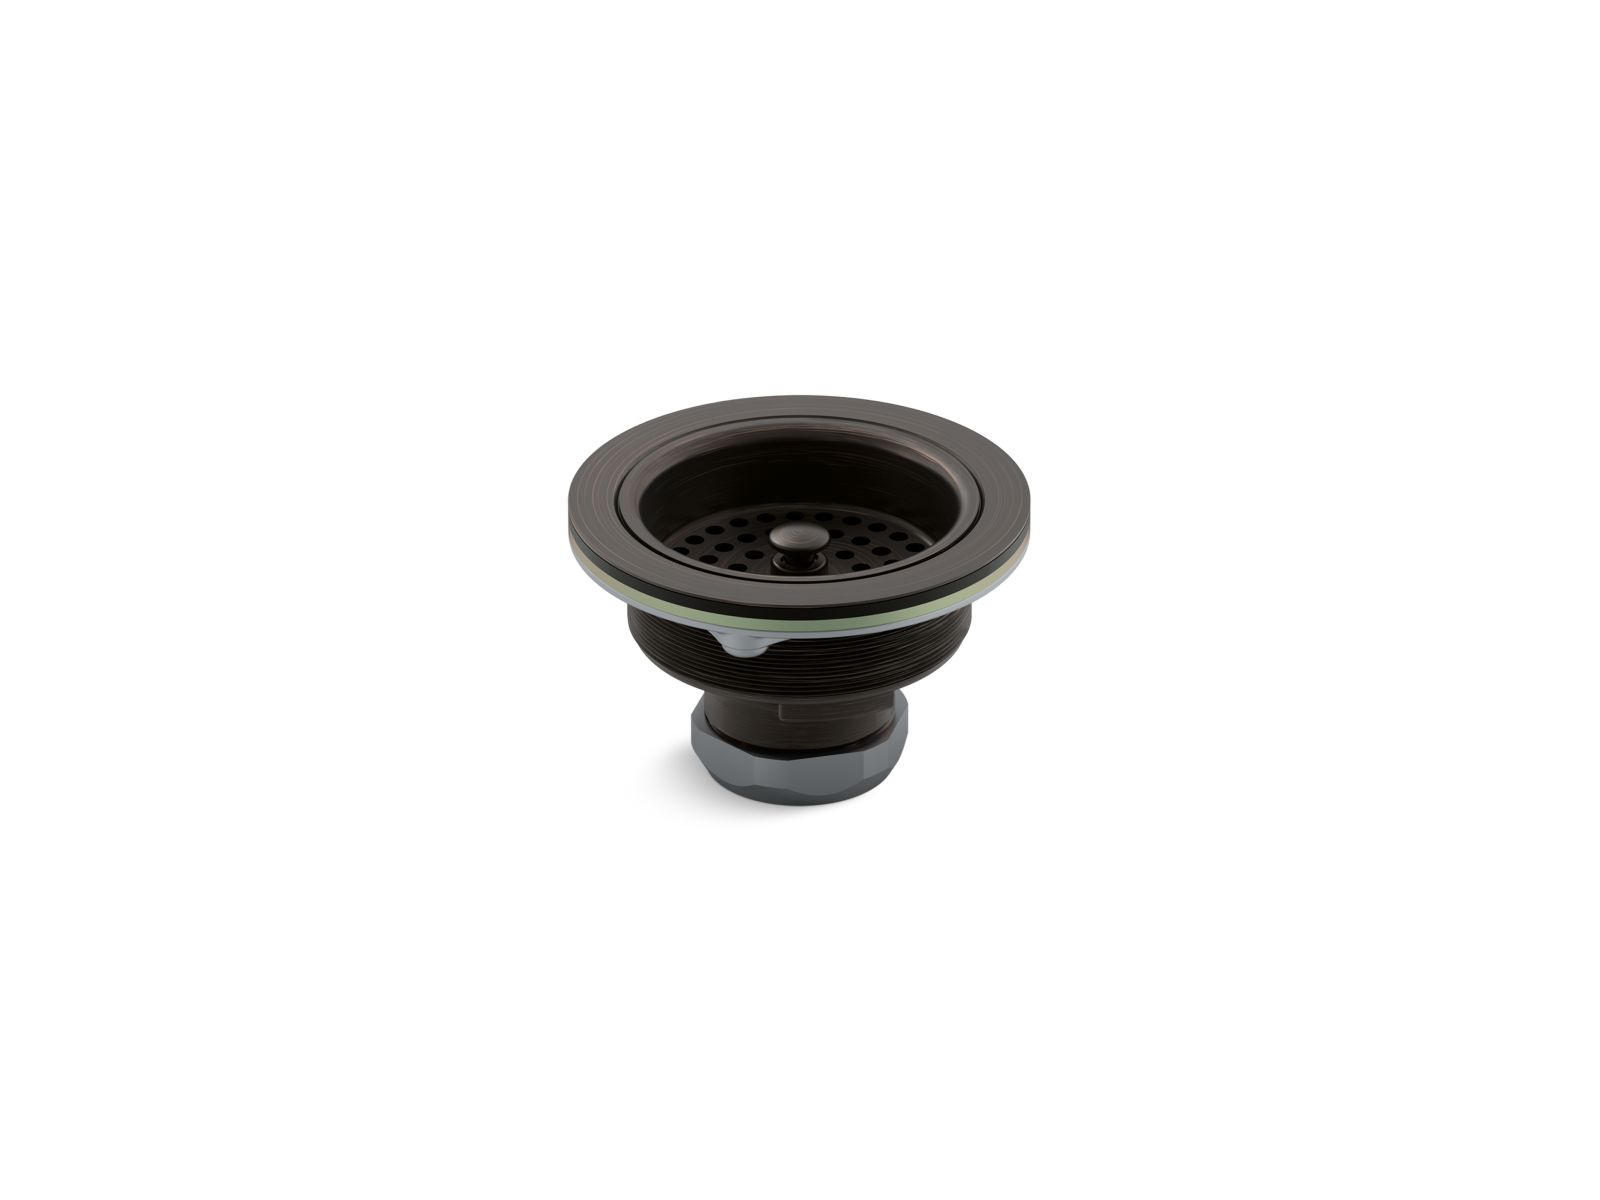 Kohler K-8799-2BZ Sink Strainer - Less Tail Piece, Oil Rubbed Bronze (2BZ)